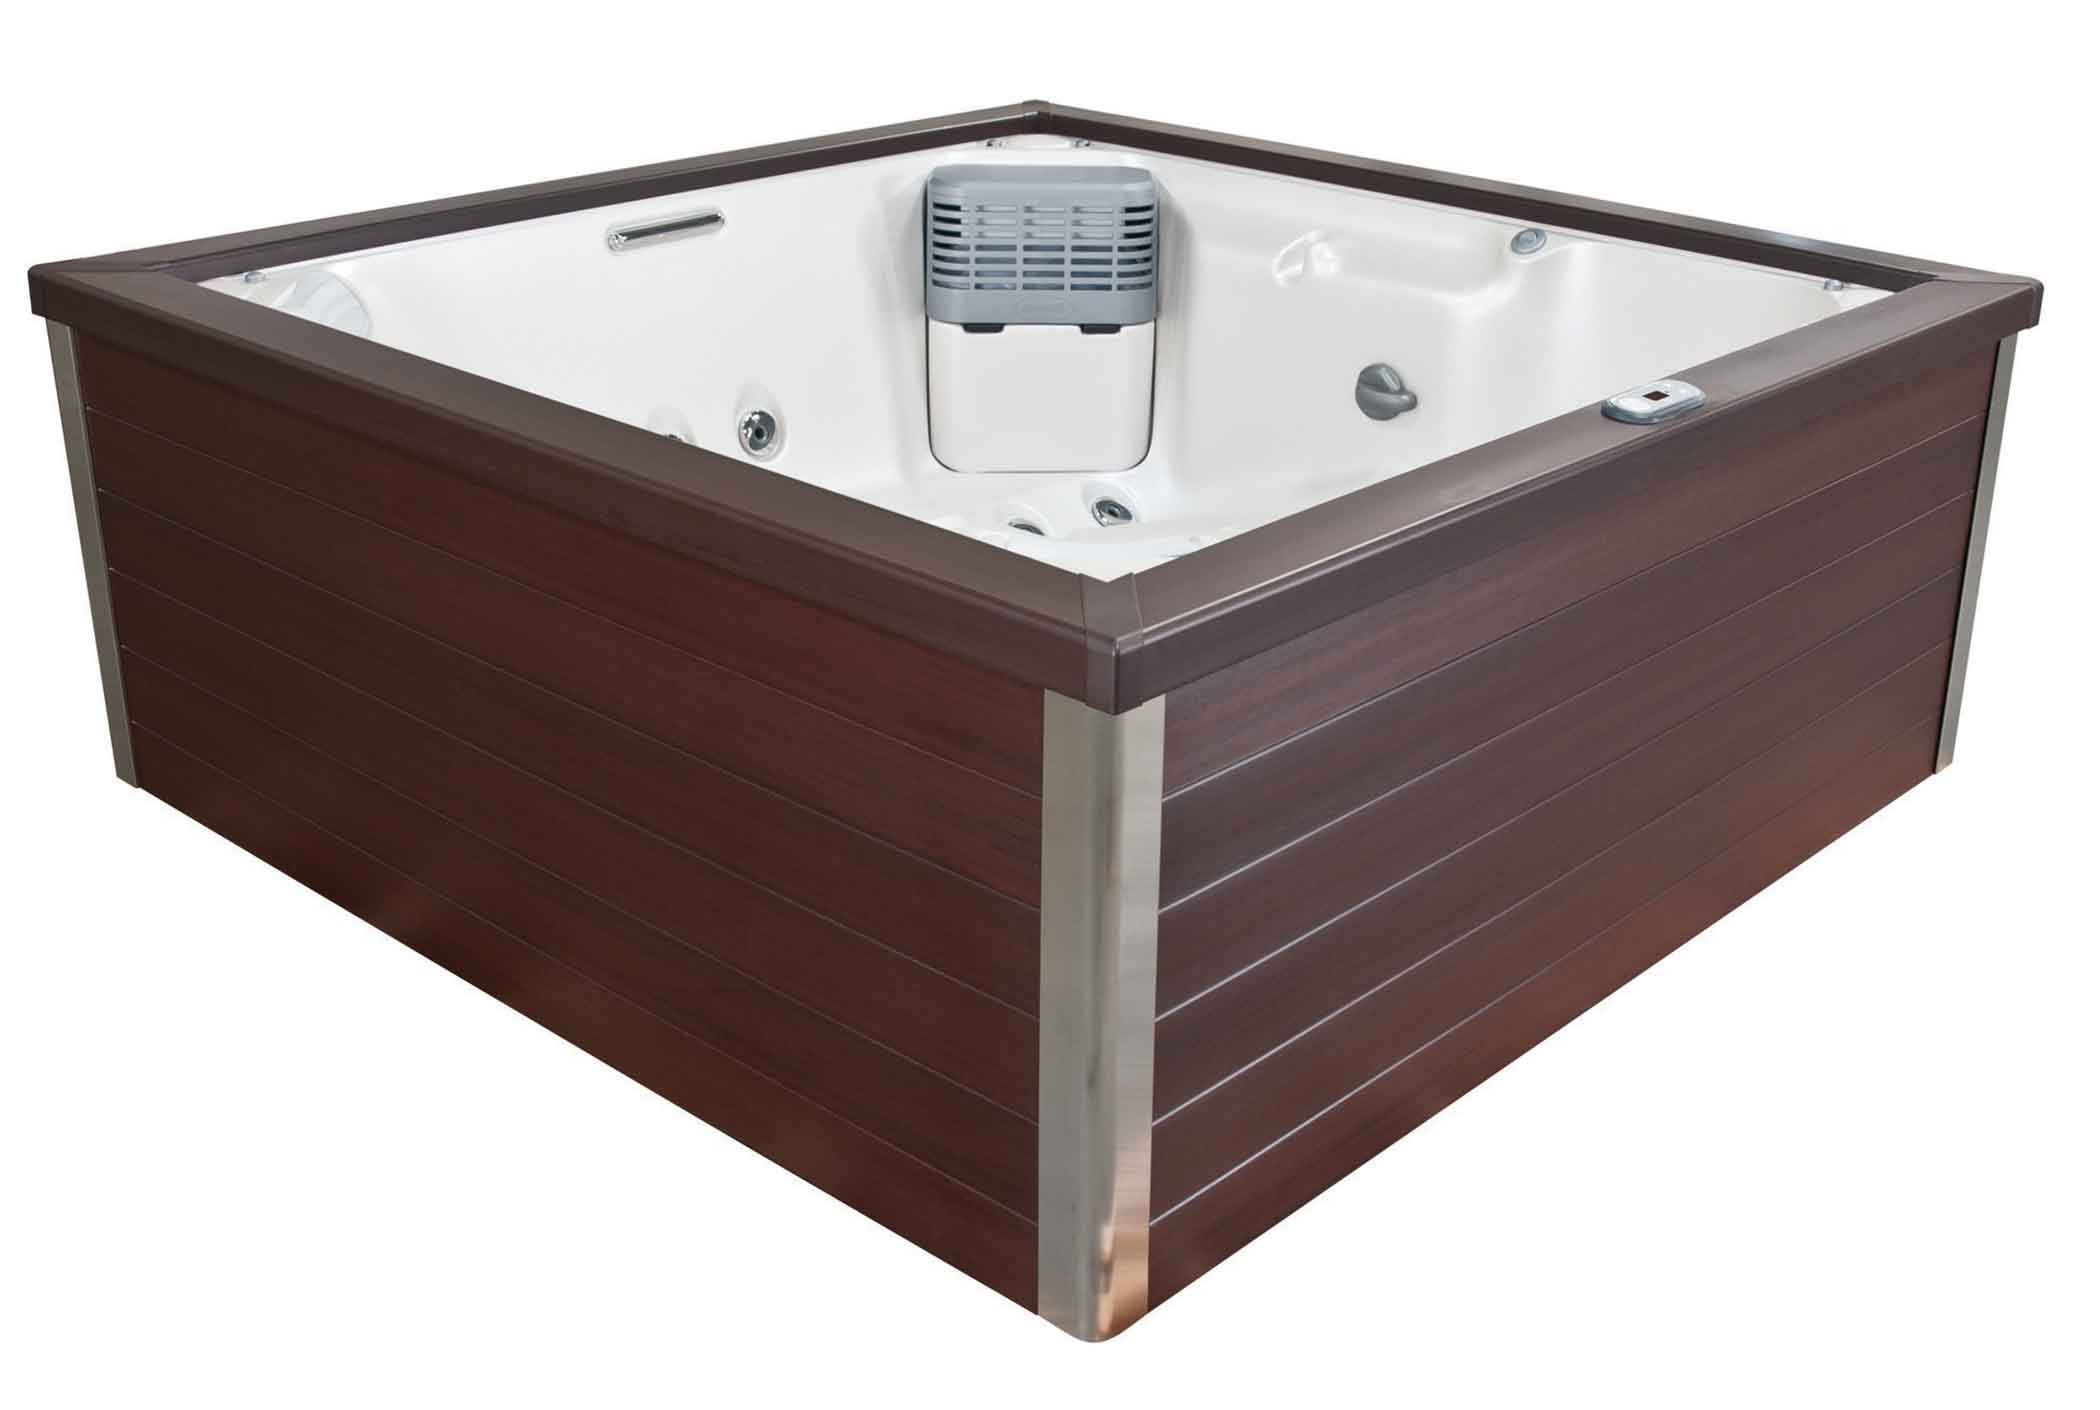 J-LXL® hot tub in Hurricane, Utah